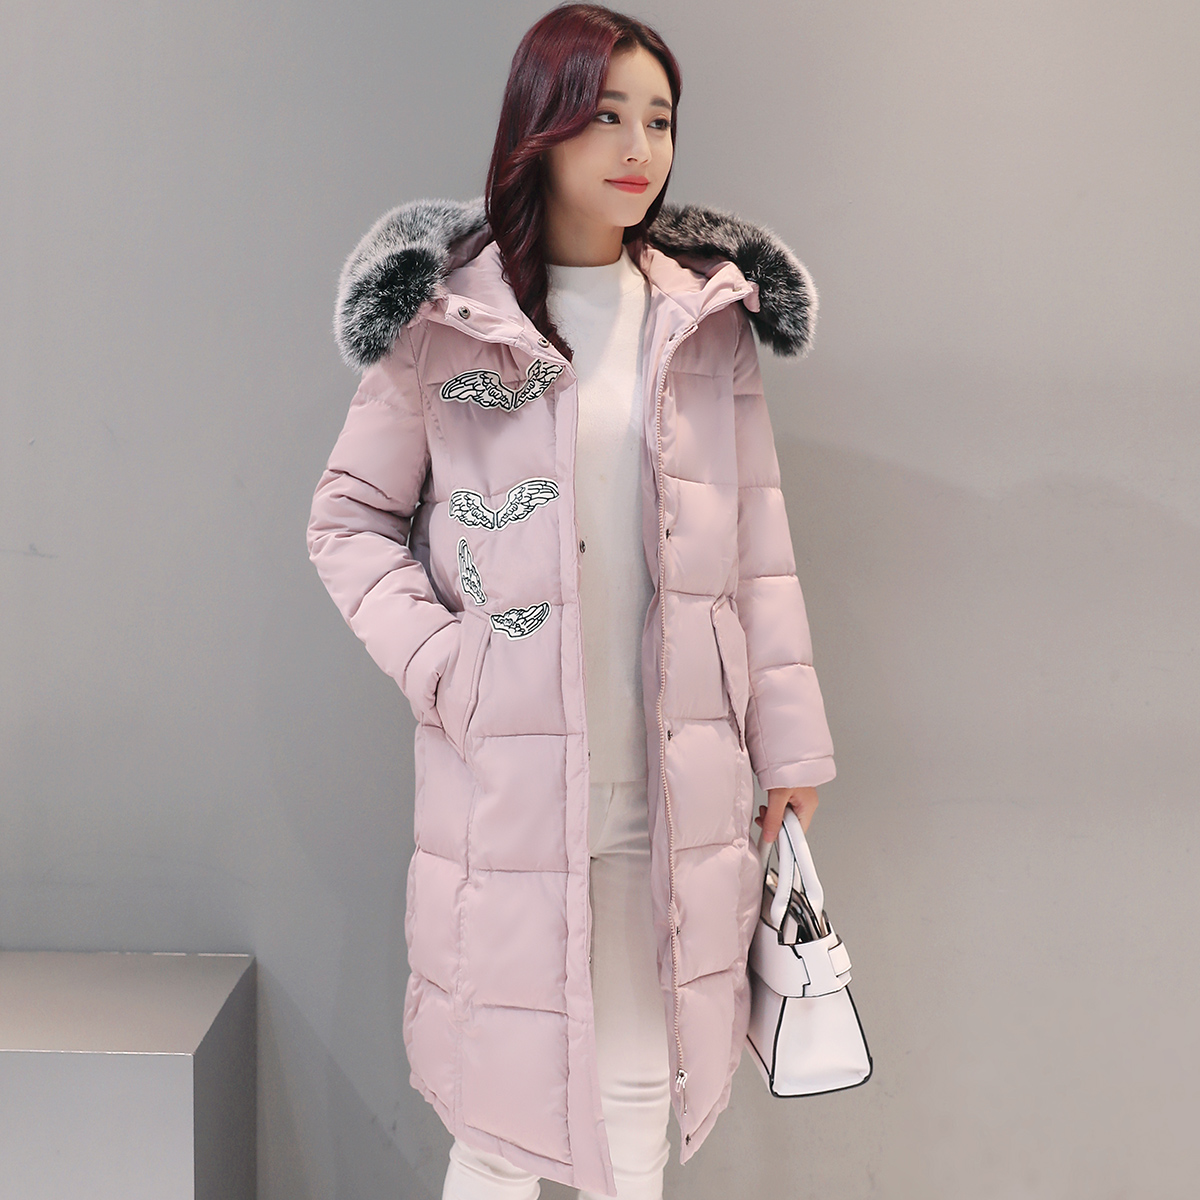 M 2XL 2016 New Women s Winter Coat Solid Medium Long Jacket With Fur Hooded Cotton